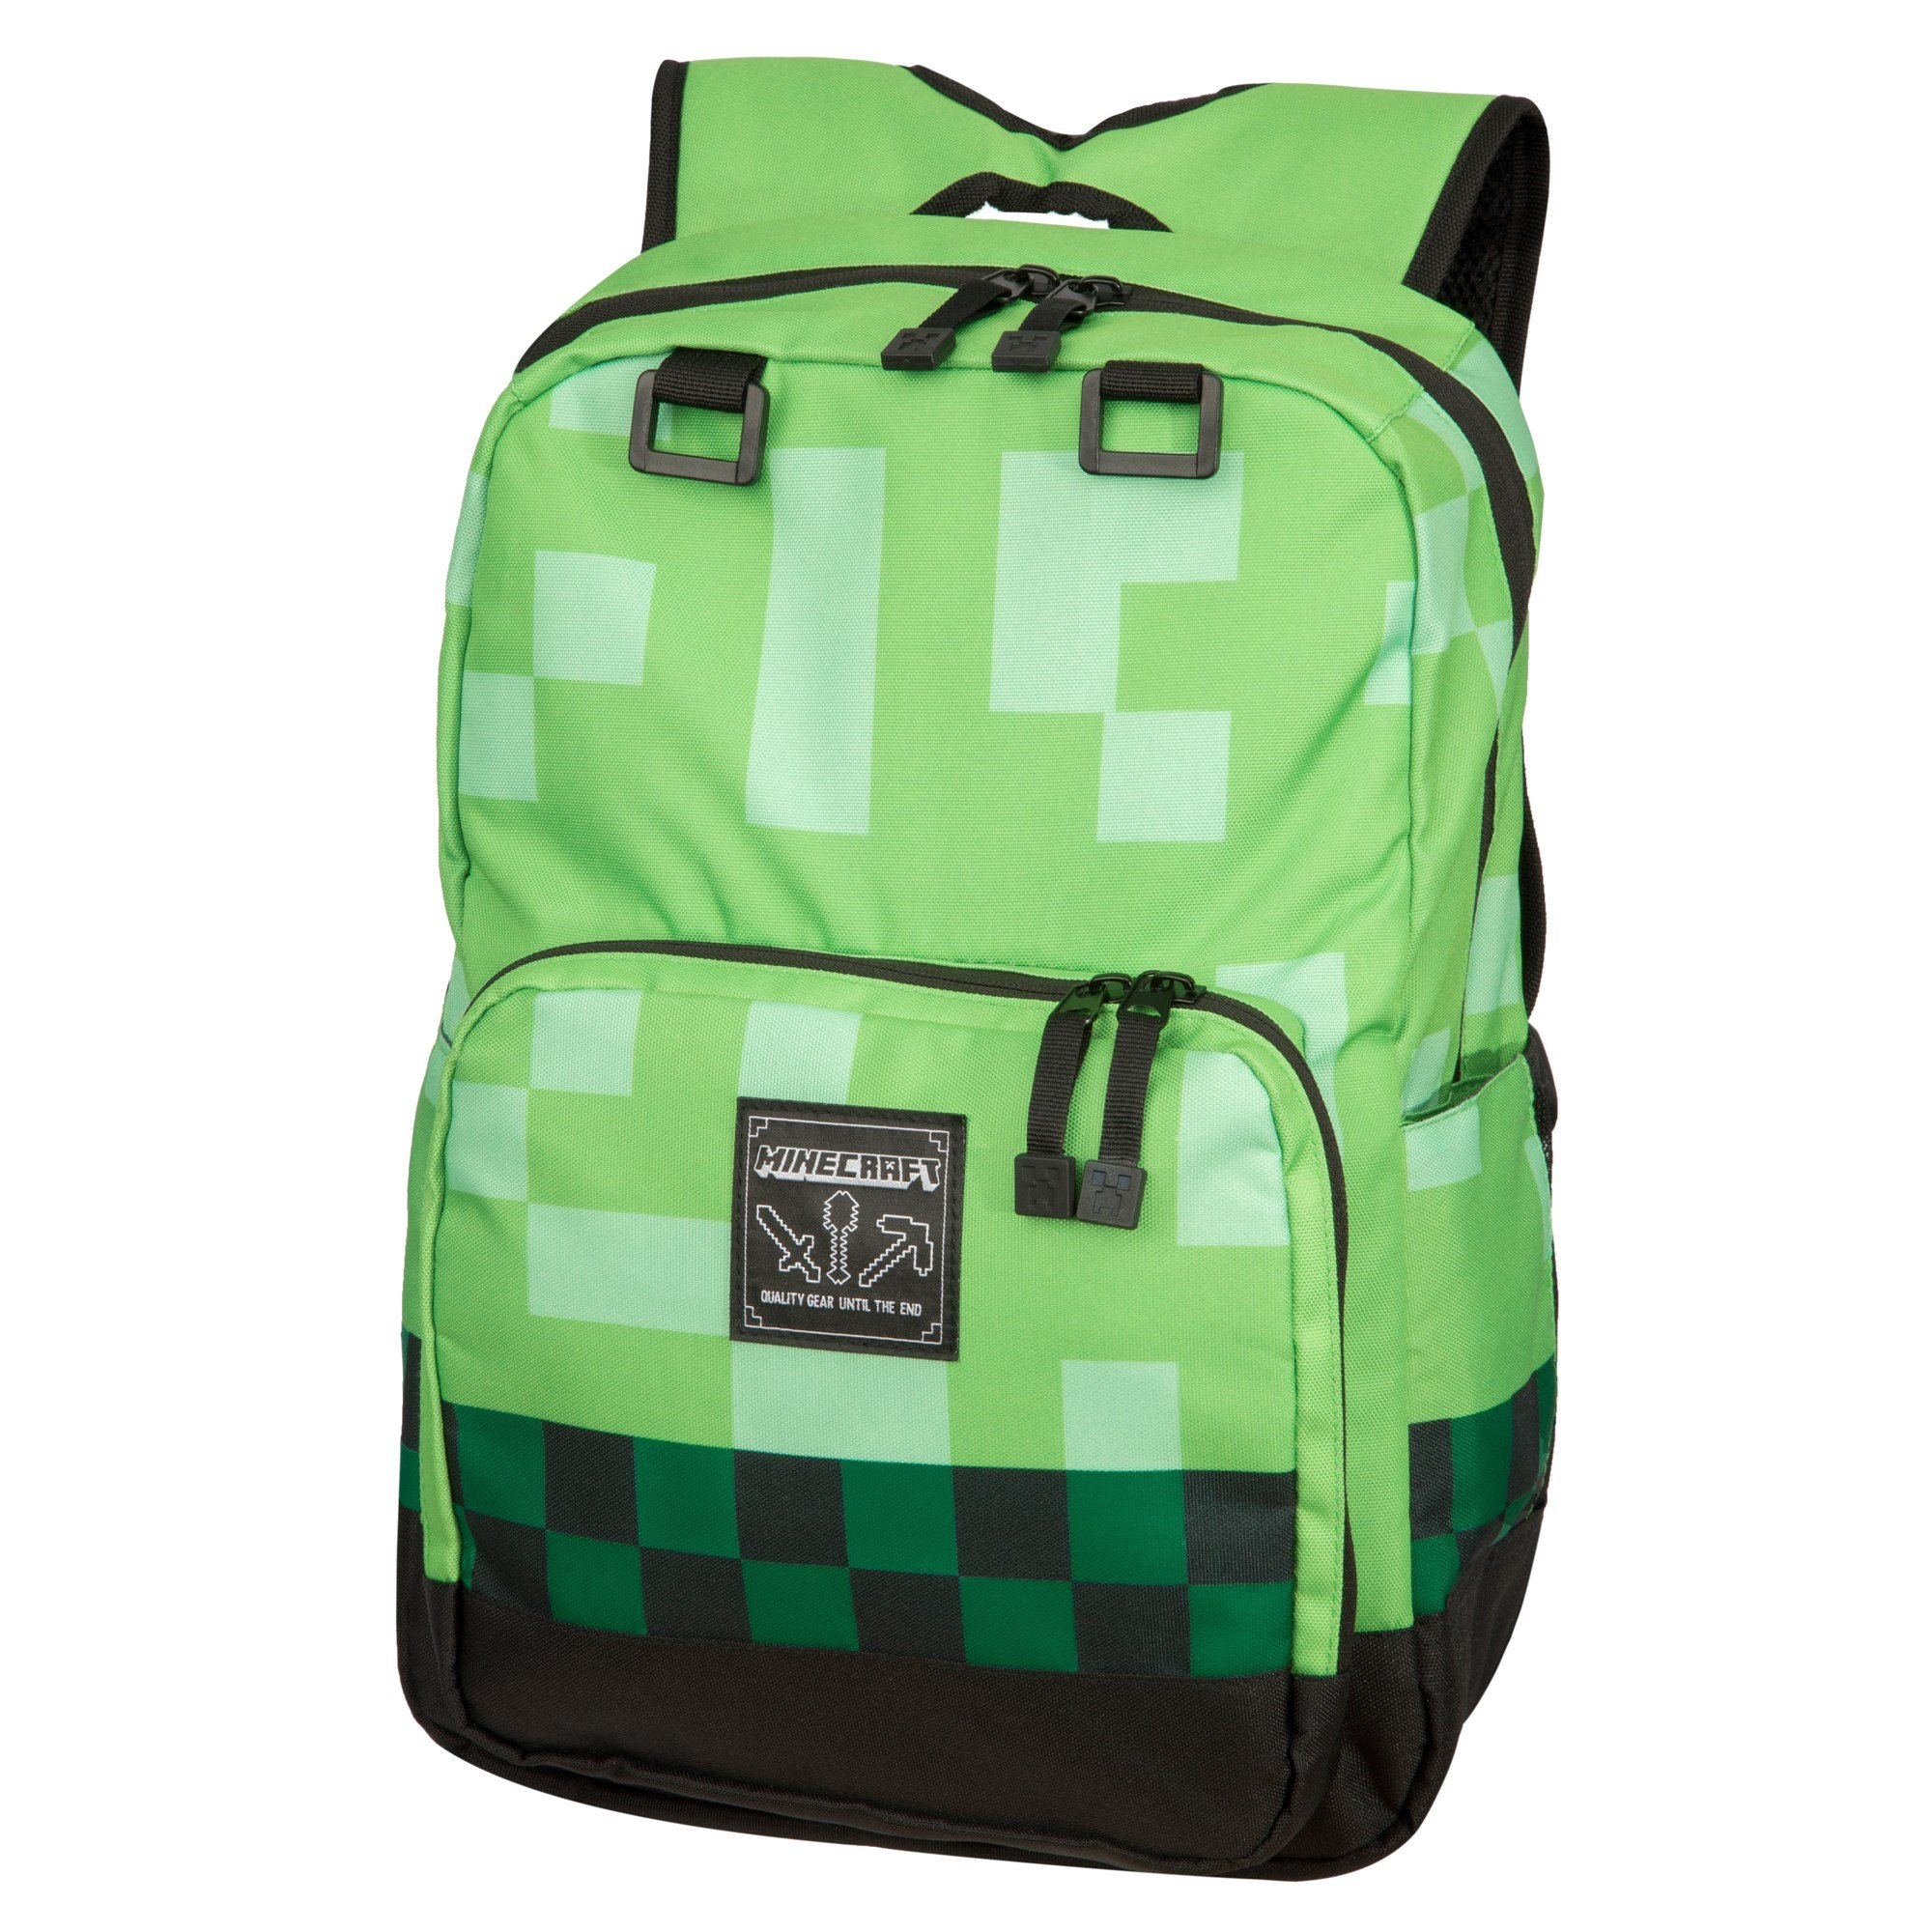 JINX Minecraft Creeper Kids Backpack (Green, 18'') for School, Camping, Travel, Outdoors & Fun by JINX (Image #1)